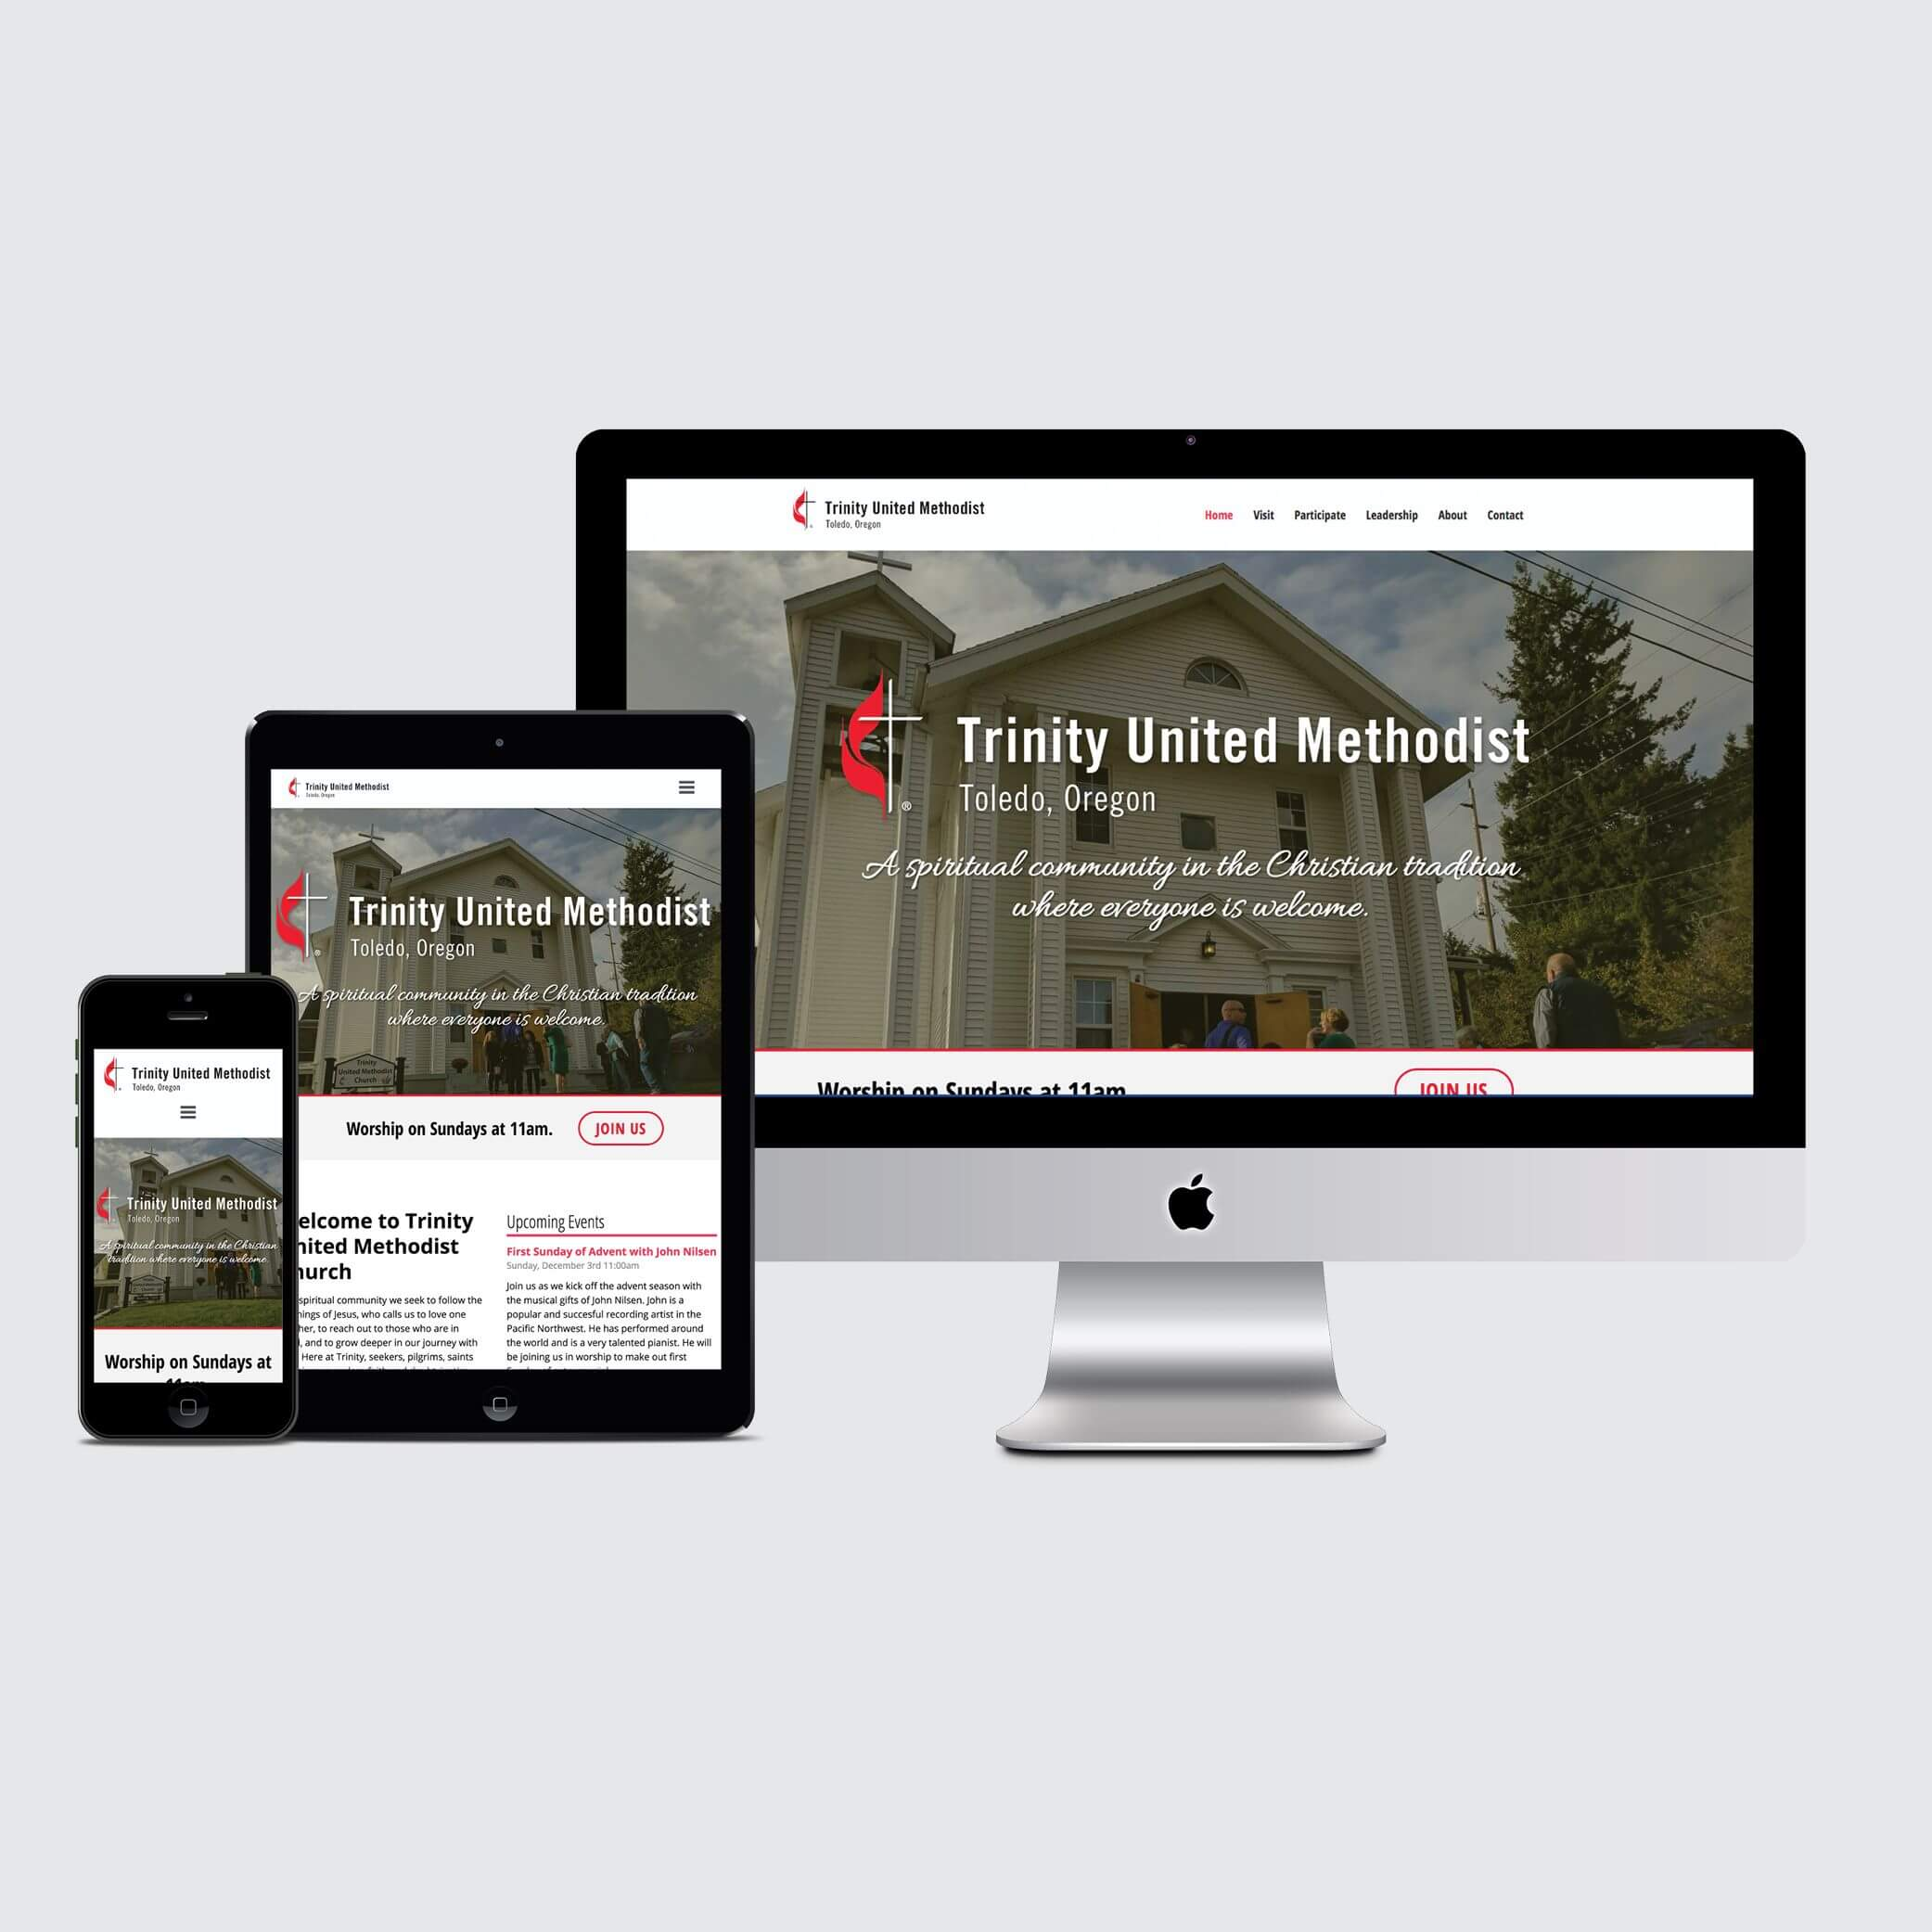 Responsive Design Mockups showing the homepage of the Trinity United Methodist website designed by André Casey